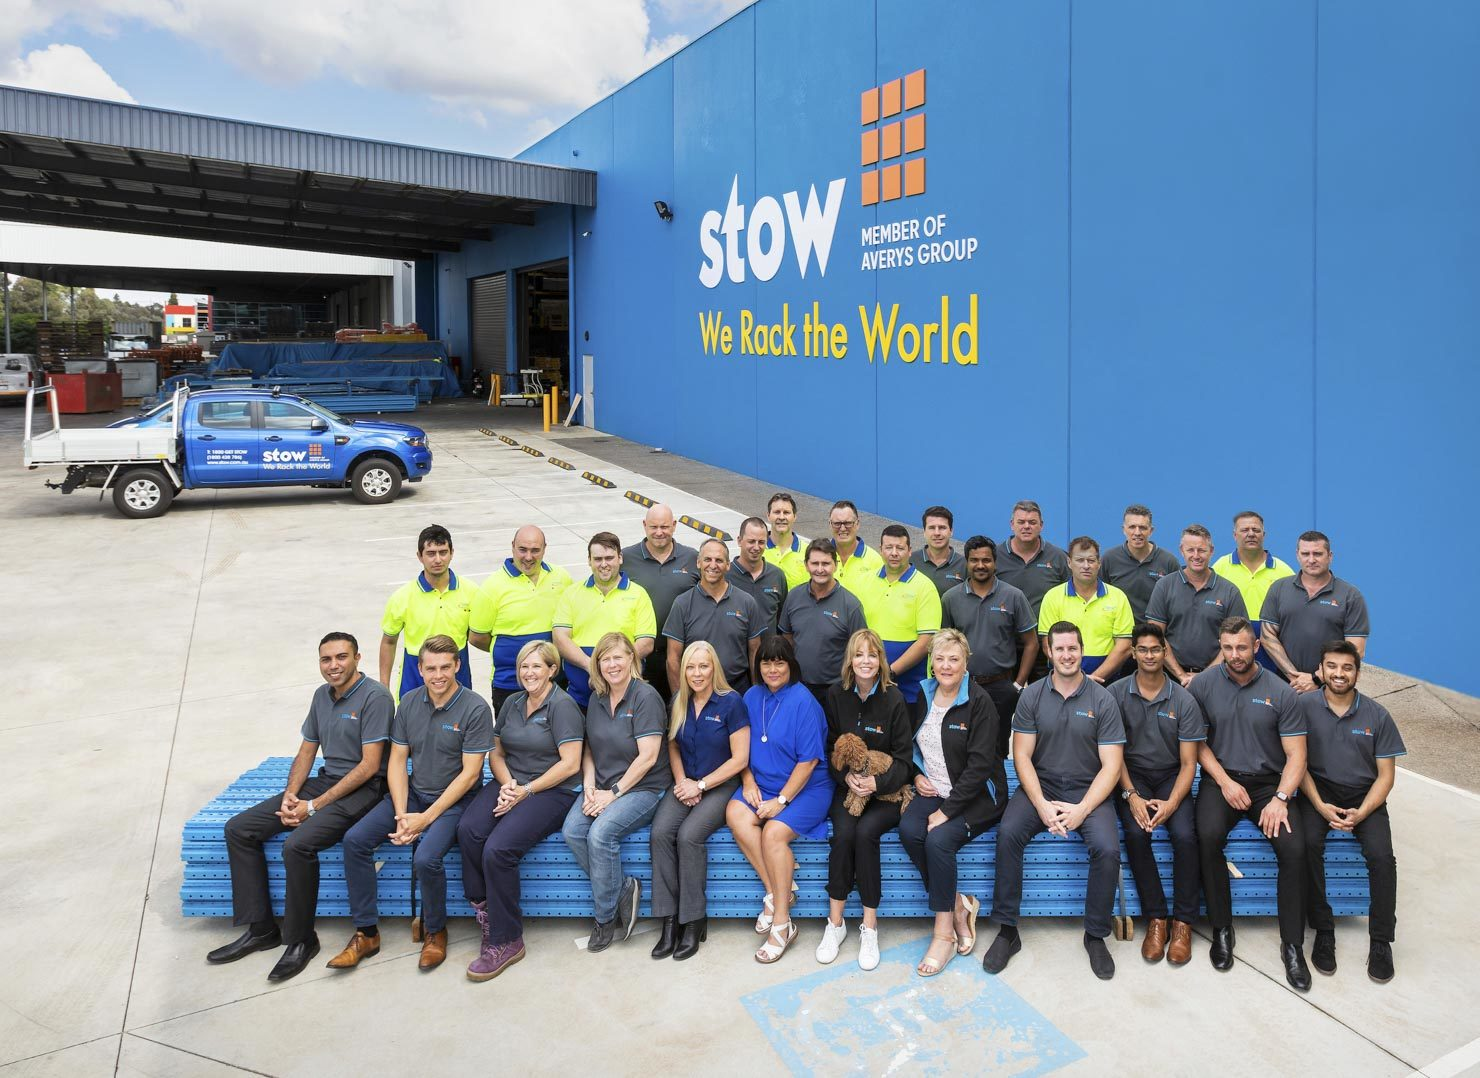 Factory staff group photo